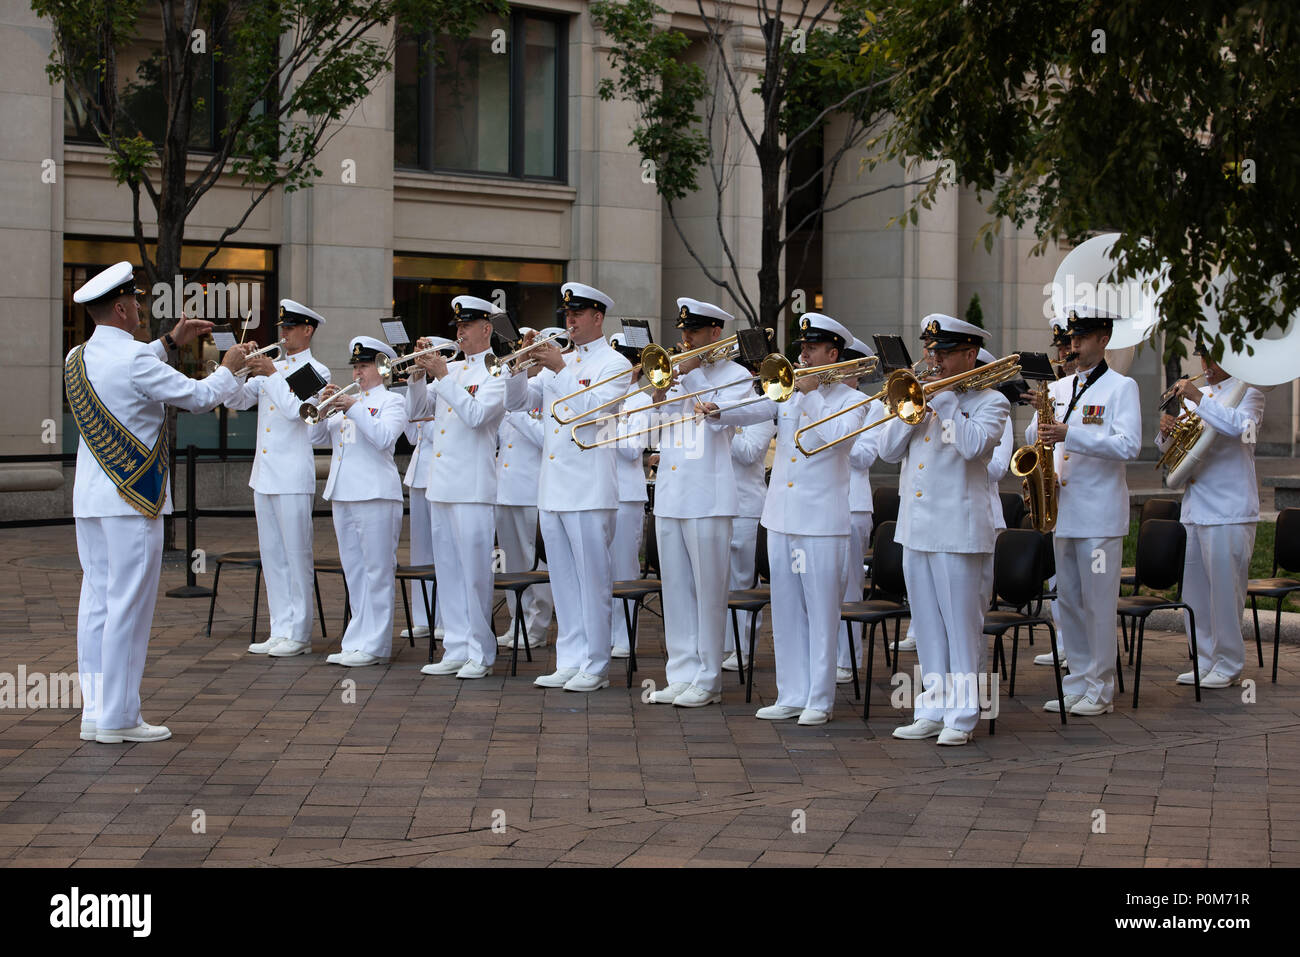 180605-N-HG258-1085 WASHINGTON (June 5, 2018) Members of the U.S. Navy Ceremonial band perform ceremonial music at the U.S. Navy Memorial in Washington, D.C., during the commemoration of the 76th anniversary of the Battle of Midway. The Battle of Midway began on June 4 in 1942 and stands as one of the U.S. Navy's most historically significant naval battles. Fought on the high seas of the Pacific more than half a century ago, this battle altered the course of the war in the Pacific and thereby shaped the outcome of world events. (U.S. Navy photo by Senior Chief Musician Stephen Hassay/Released) - Stock Image